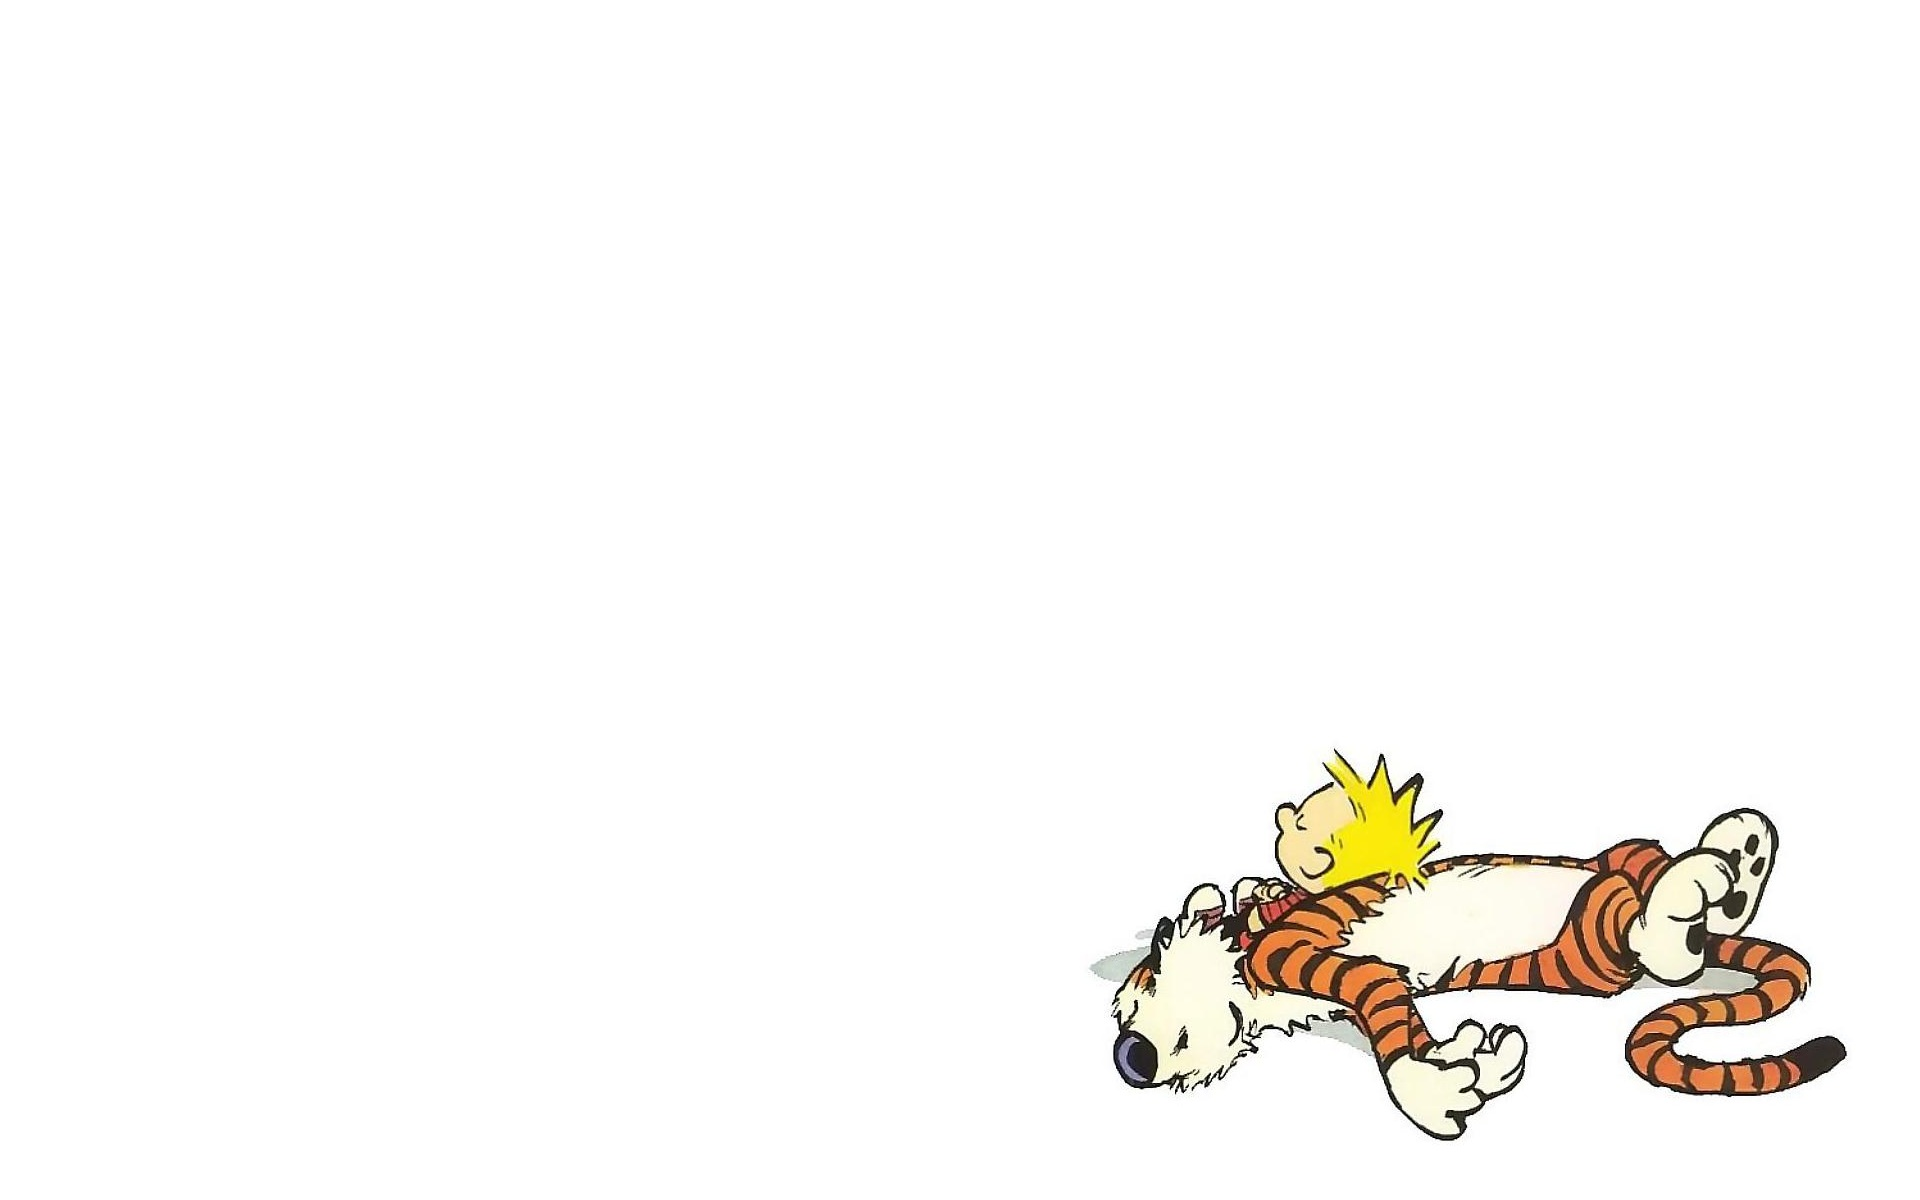 calvin and hobbes hobbs HD Wallpaper   General 786187 1920x1200